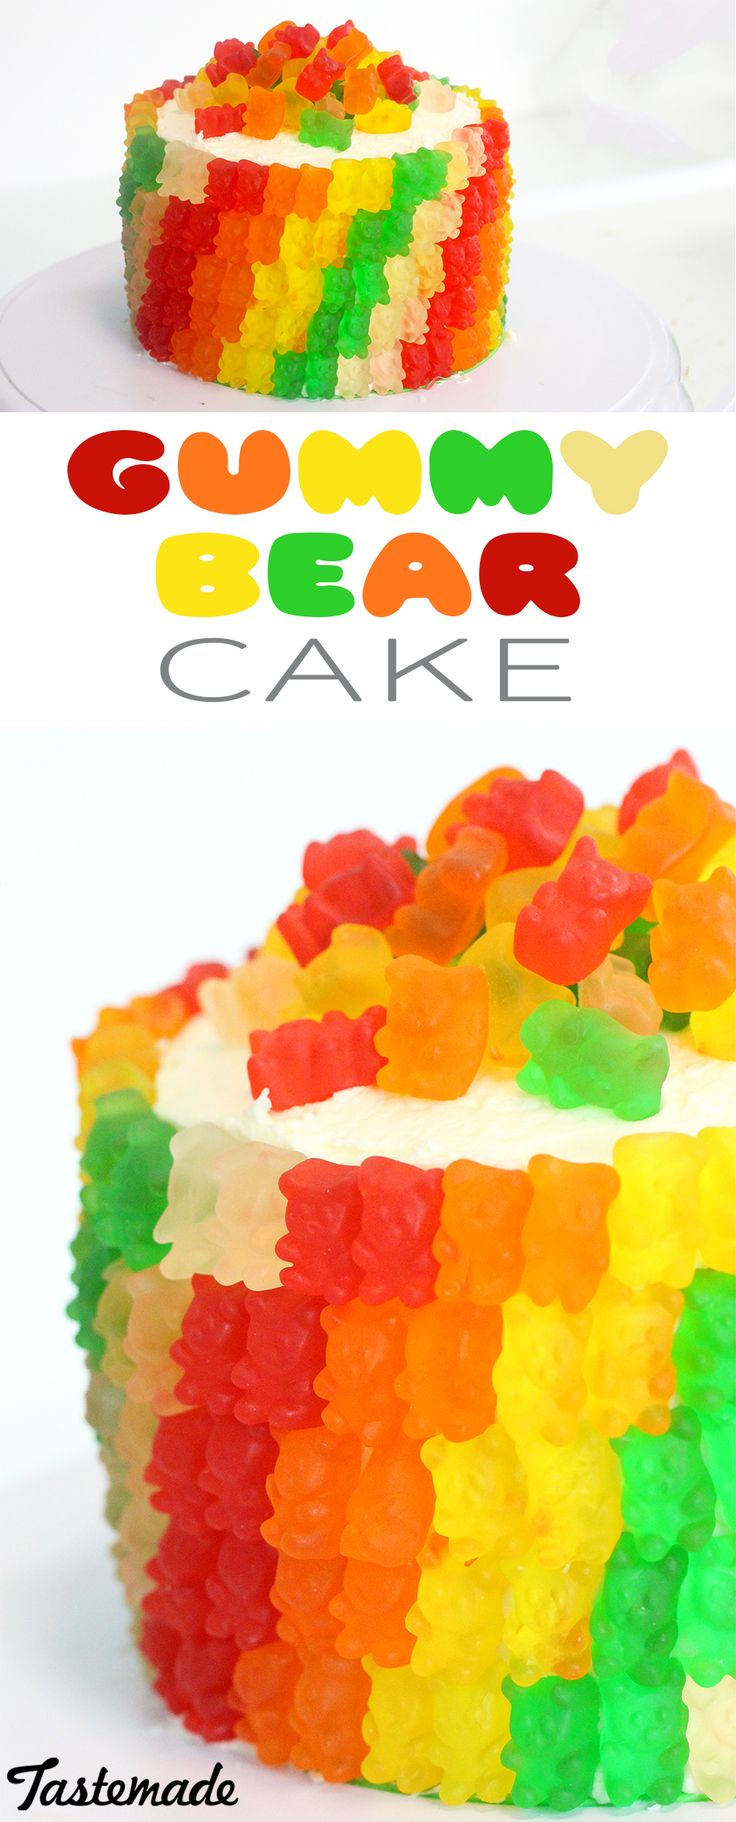 Take Funfetti cake to the next level of fun with colorful frosting and gummy candy.